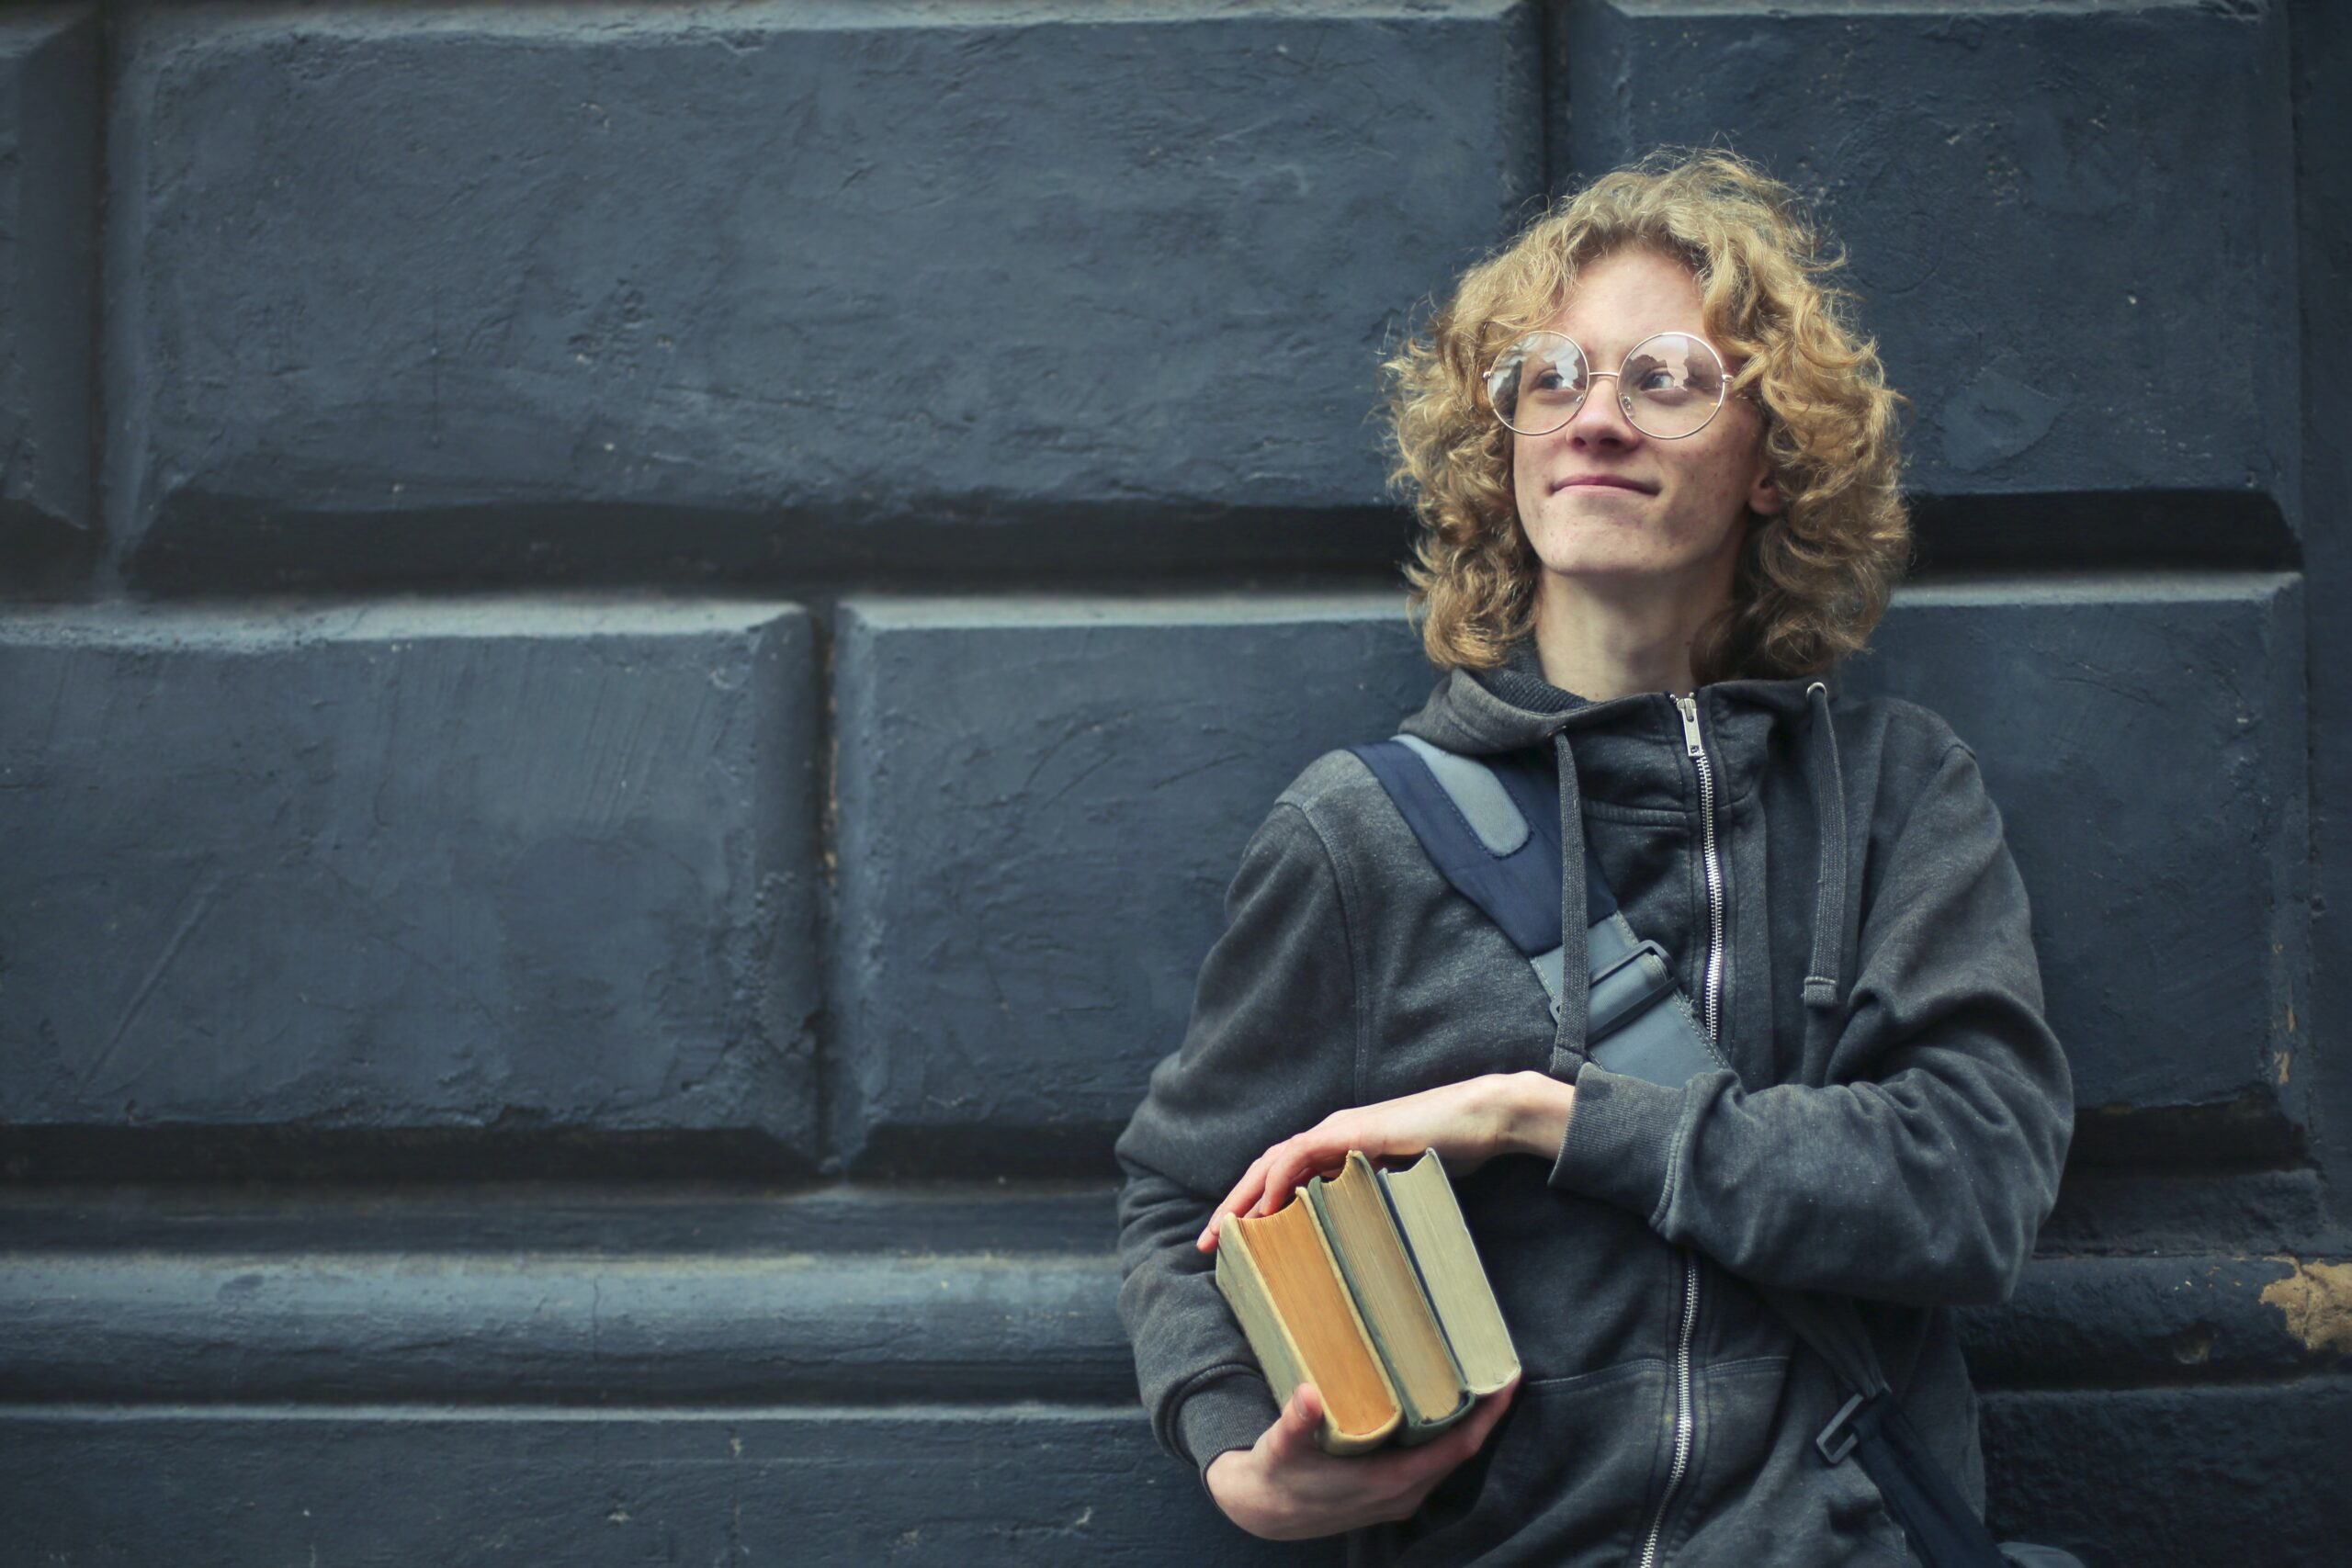 Student leaning against the wall holding books